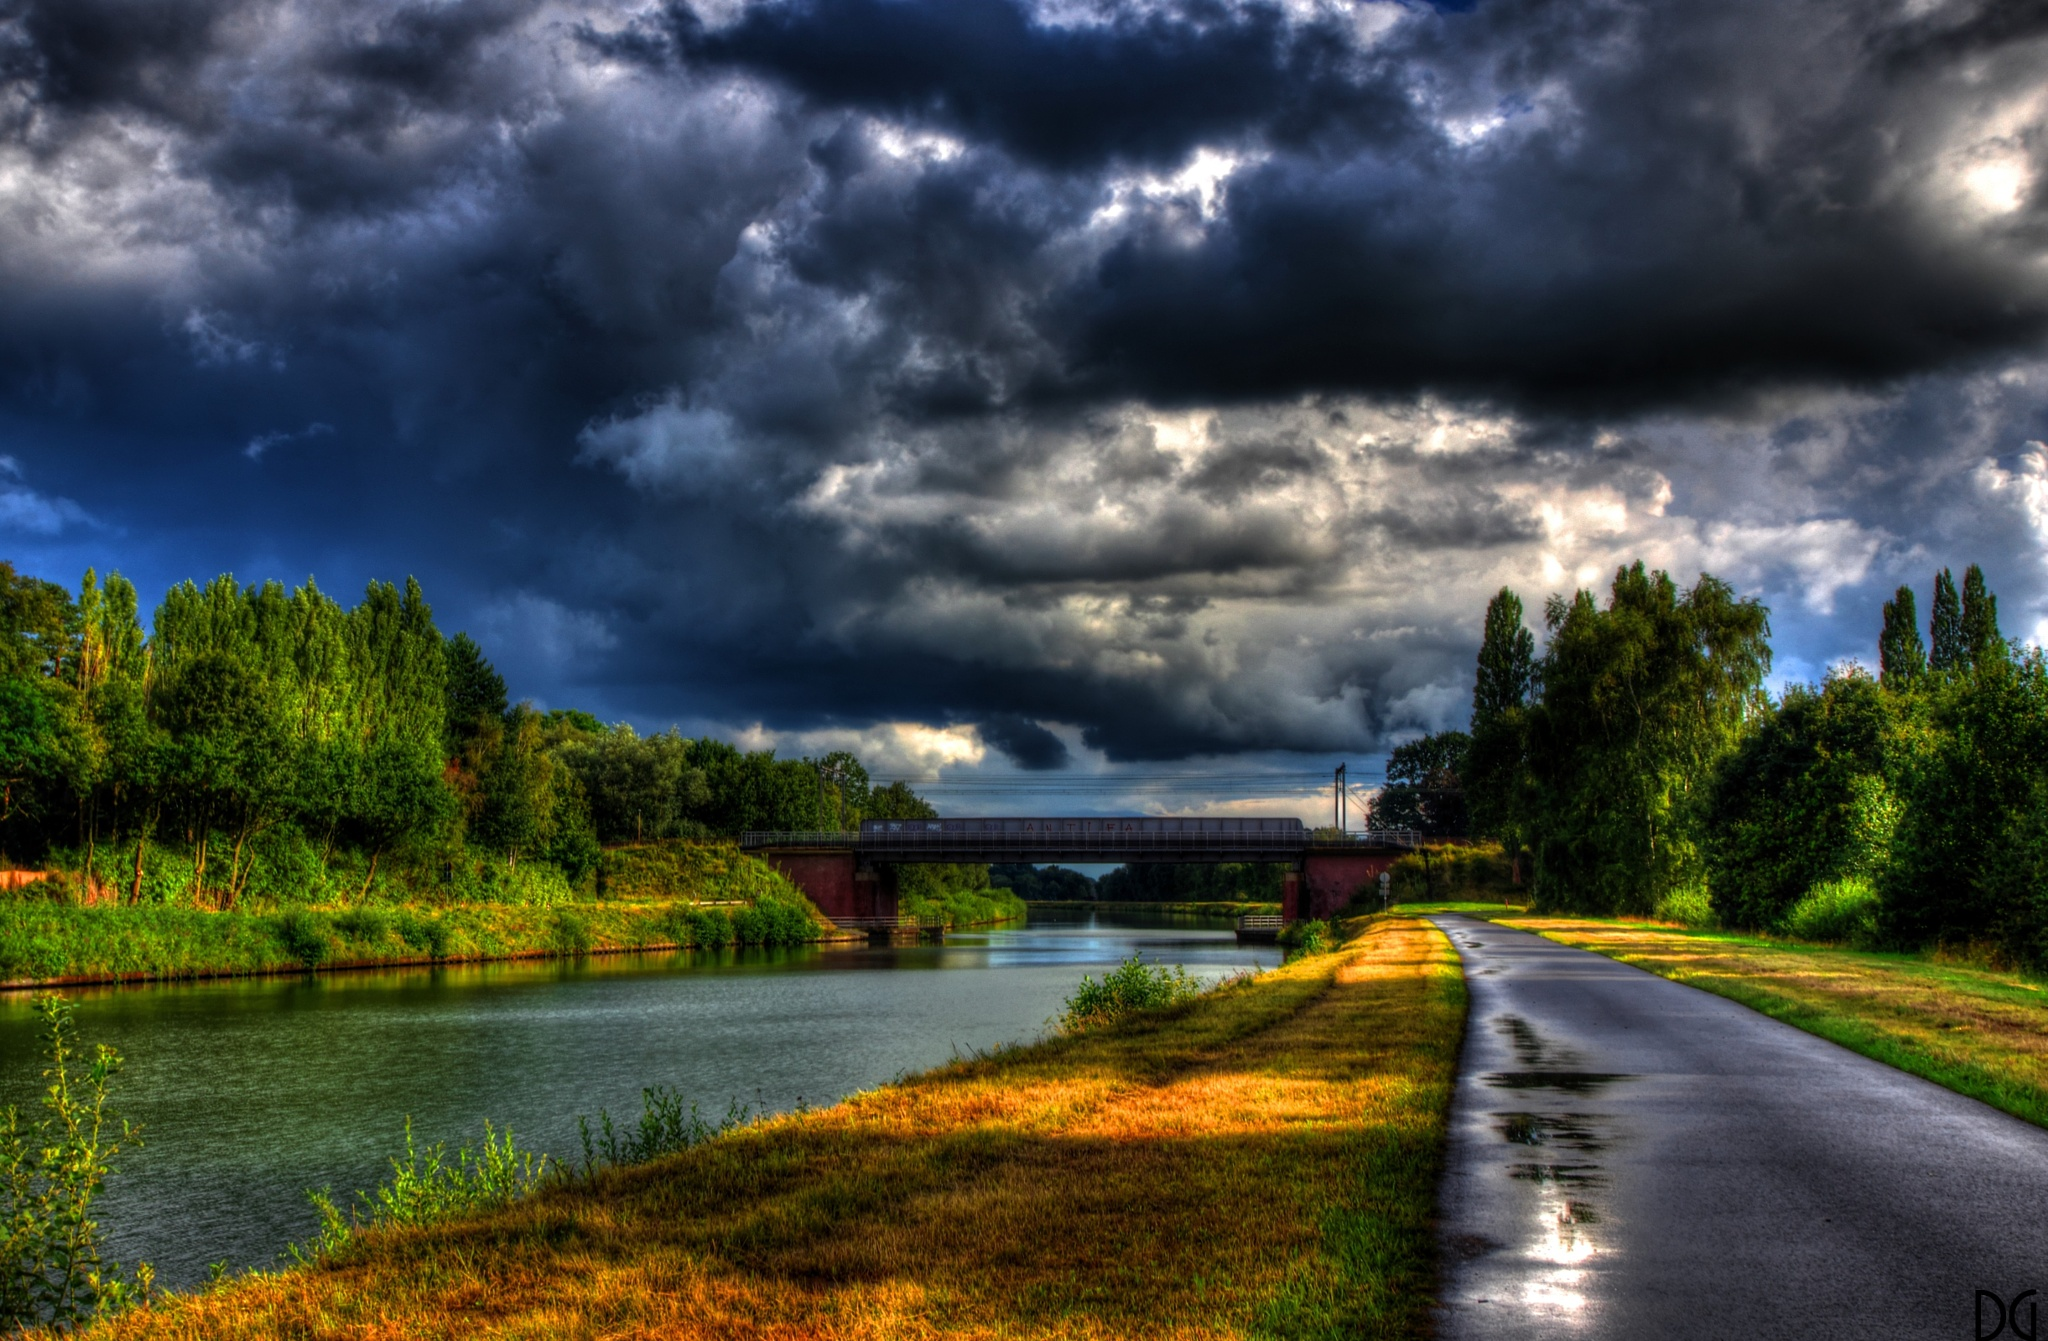 The Nete-channel. by Dirk Gonthier